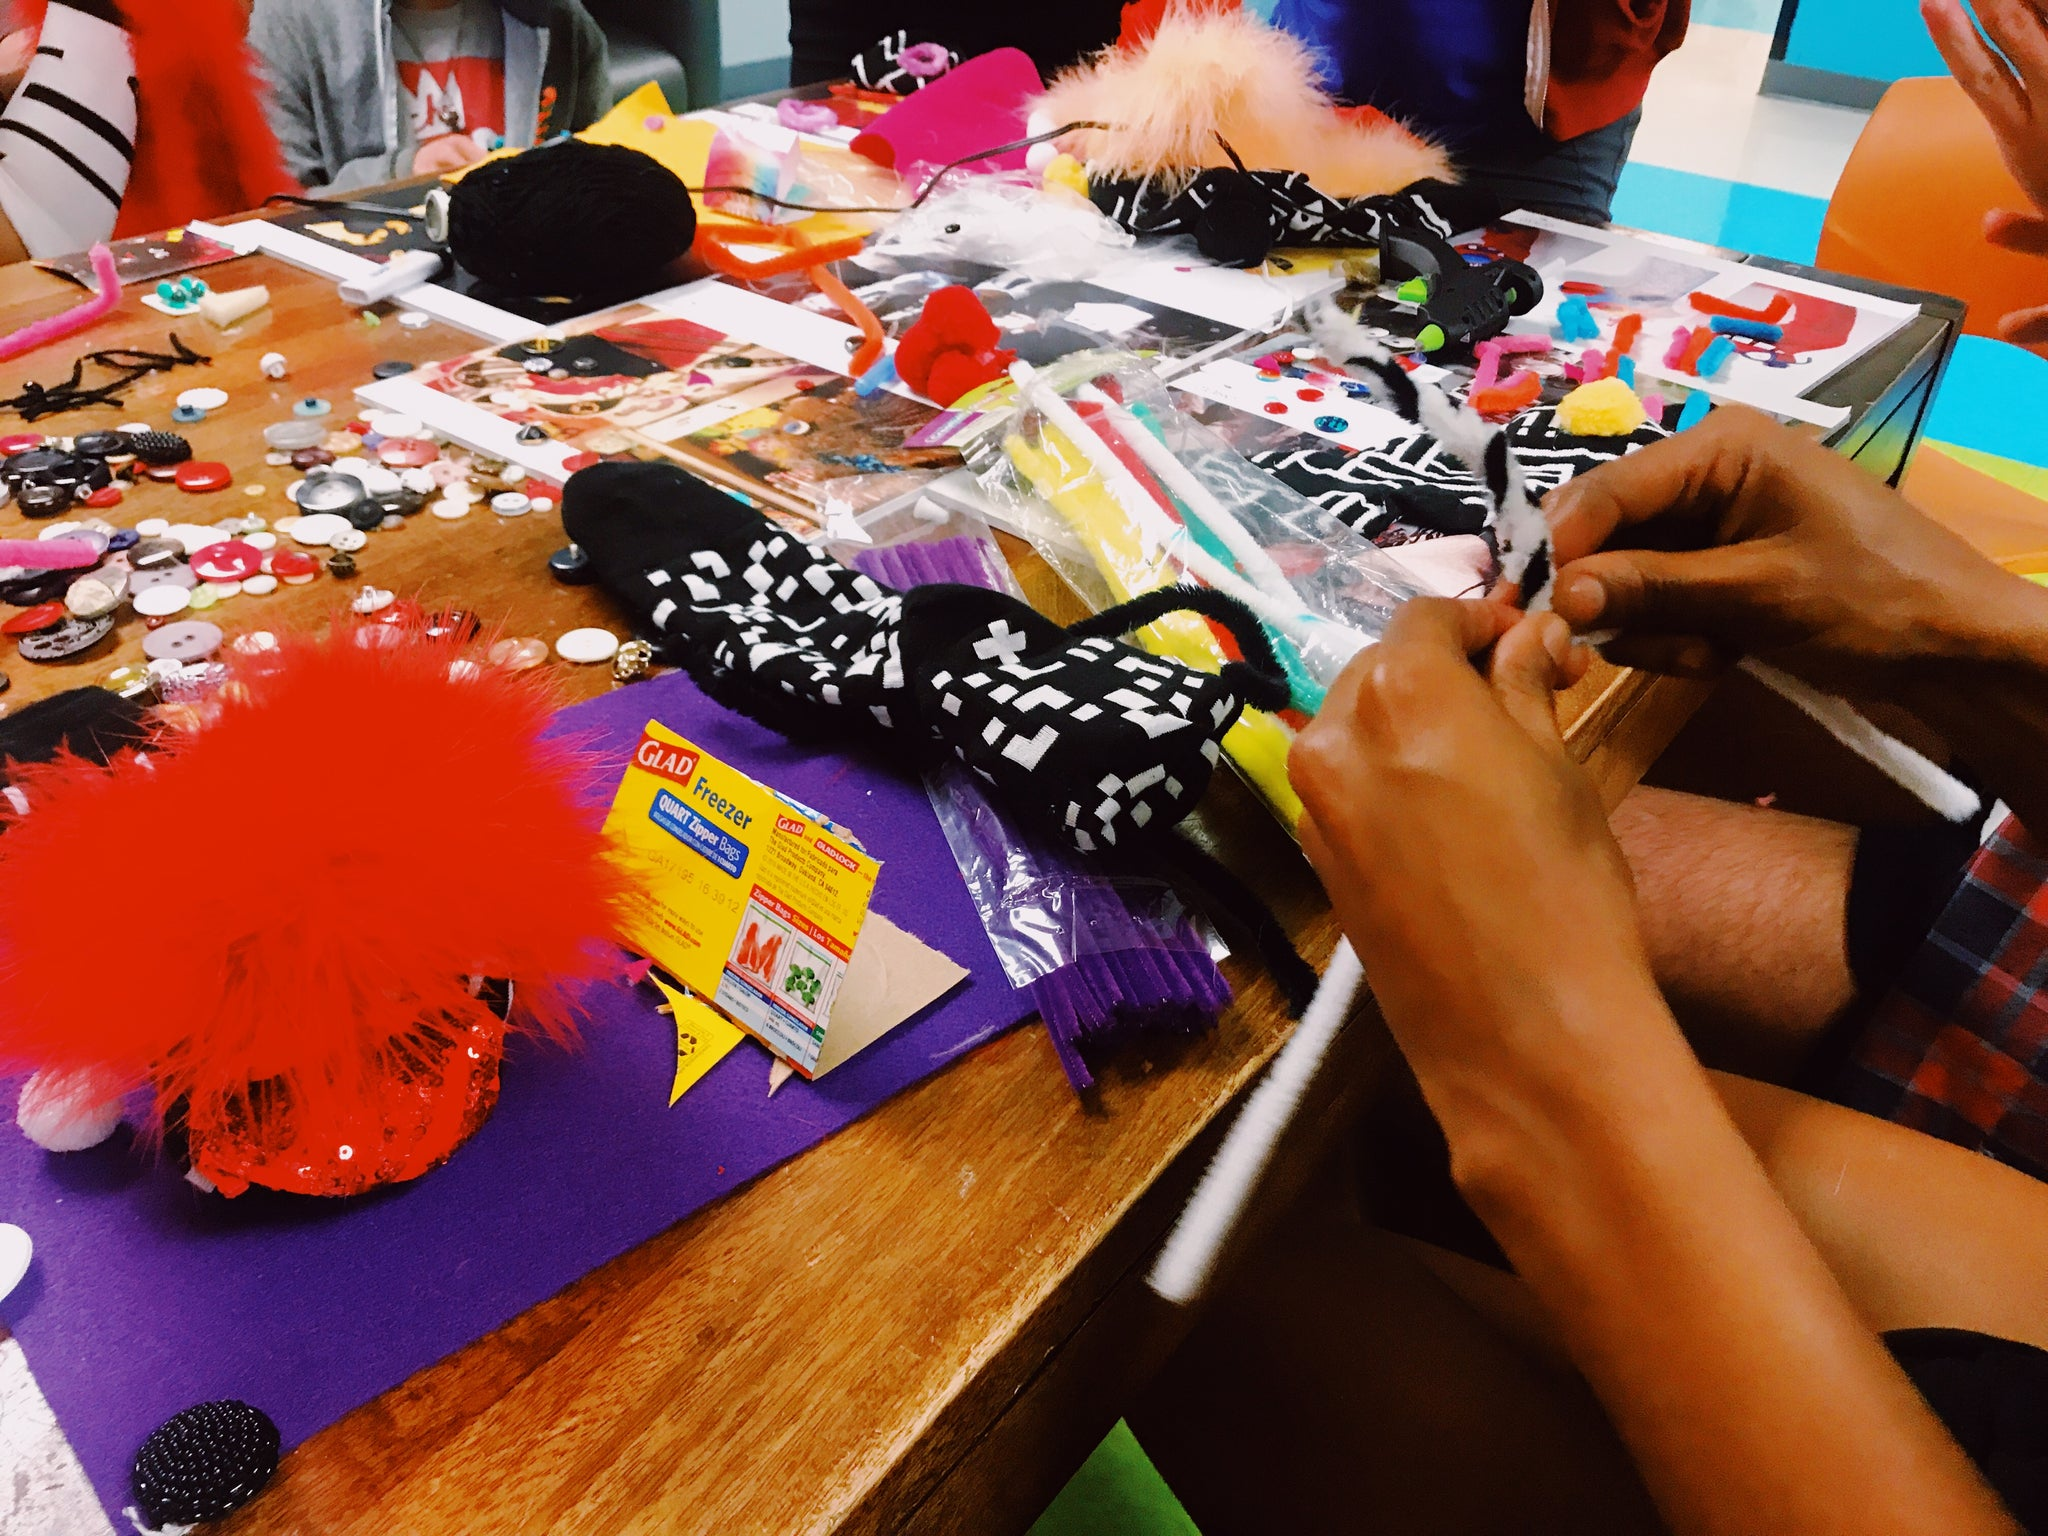 A Queer Sock Puppet Workshop at the Los Angeles LGBT Center